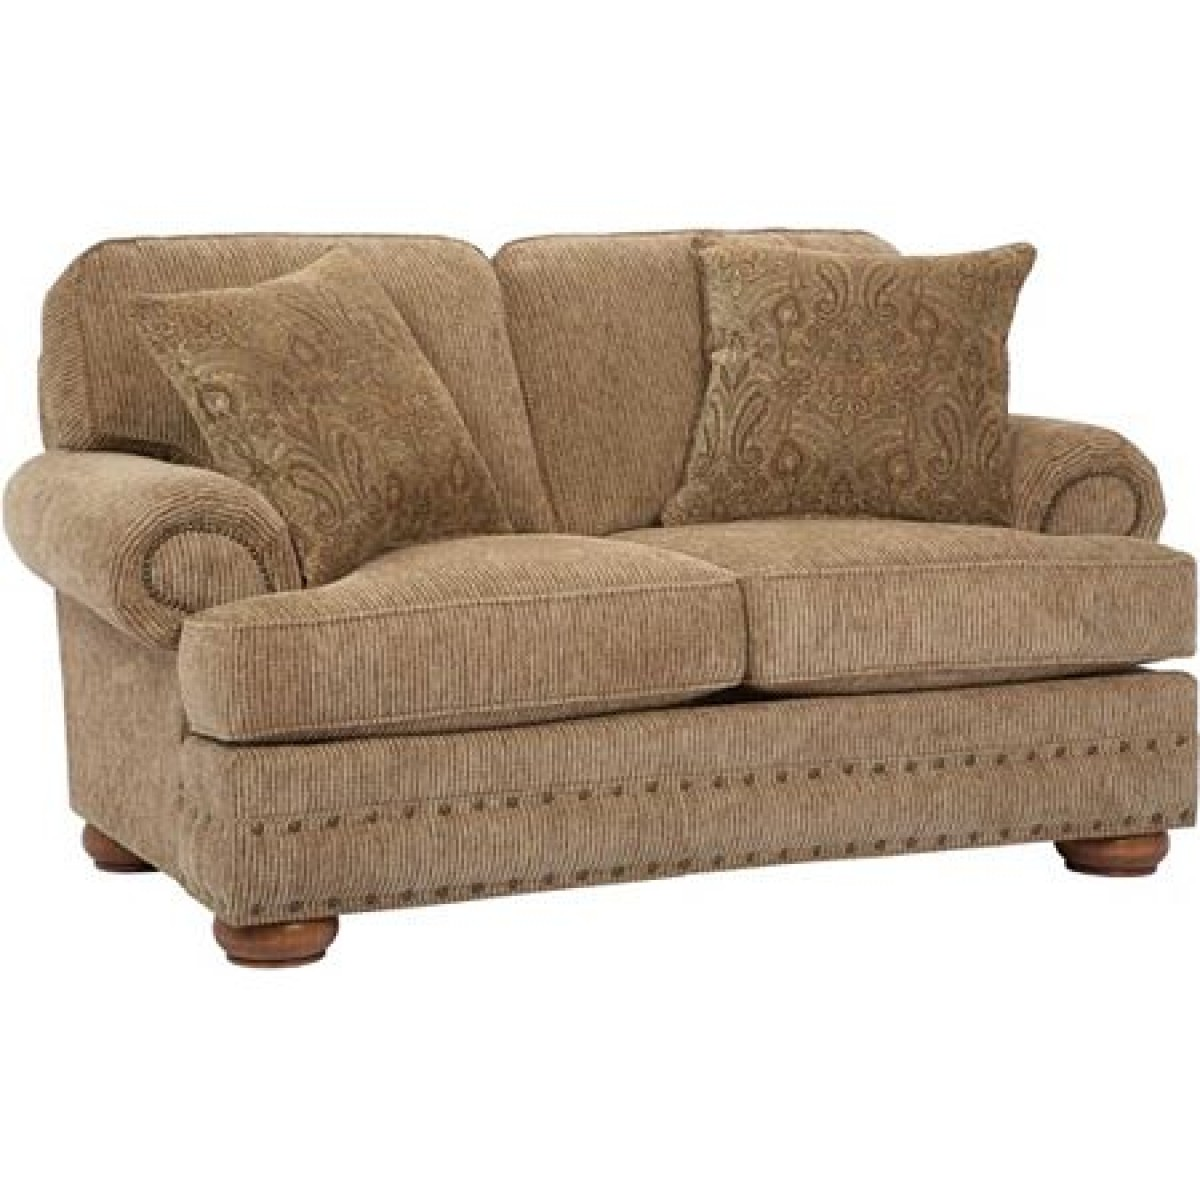 Give yourself the best rest and relaxation soft comfortable couches and loveseats couch Sofa loveseat